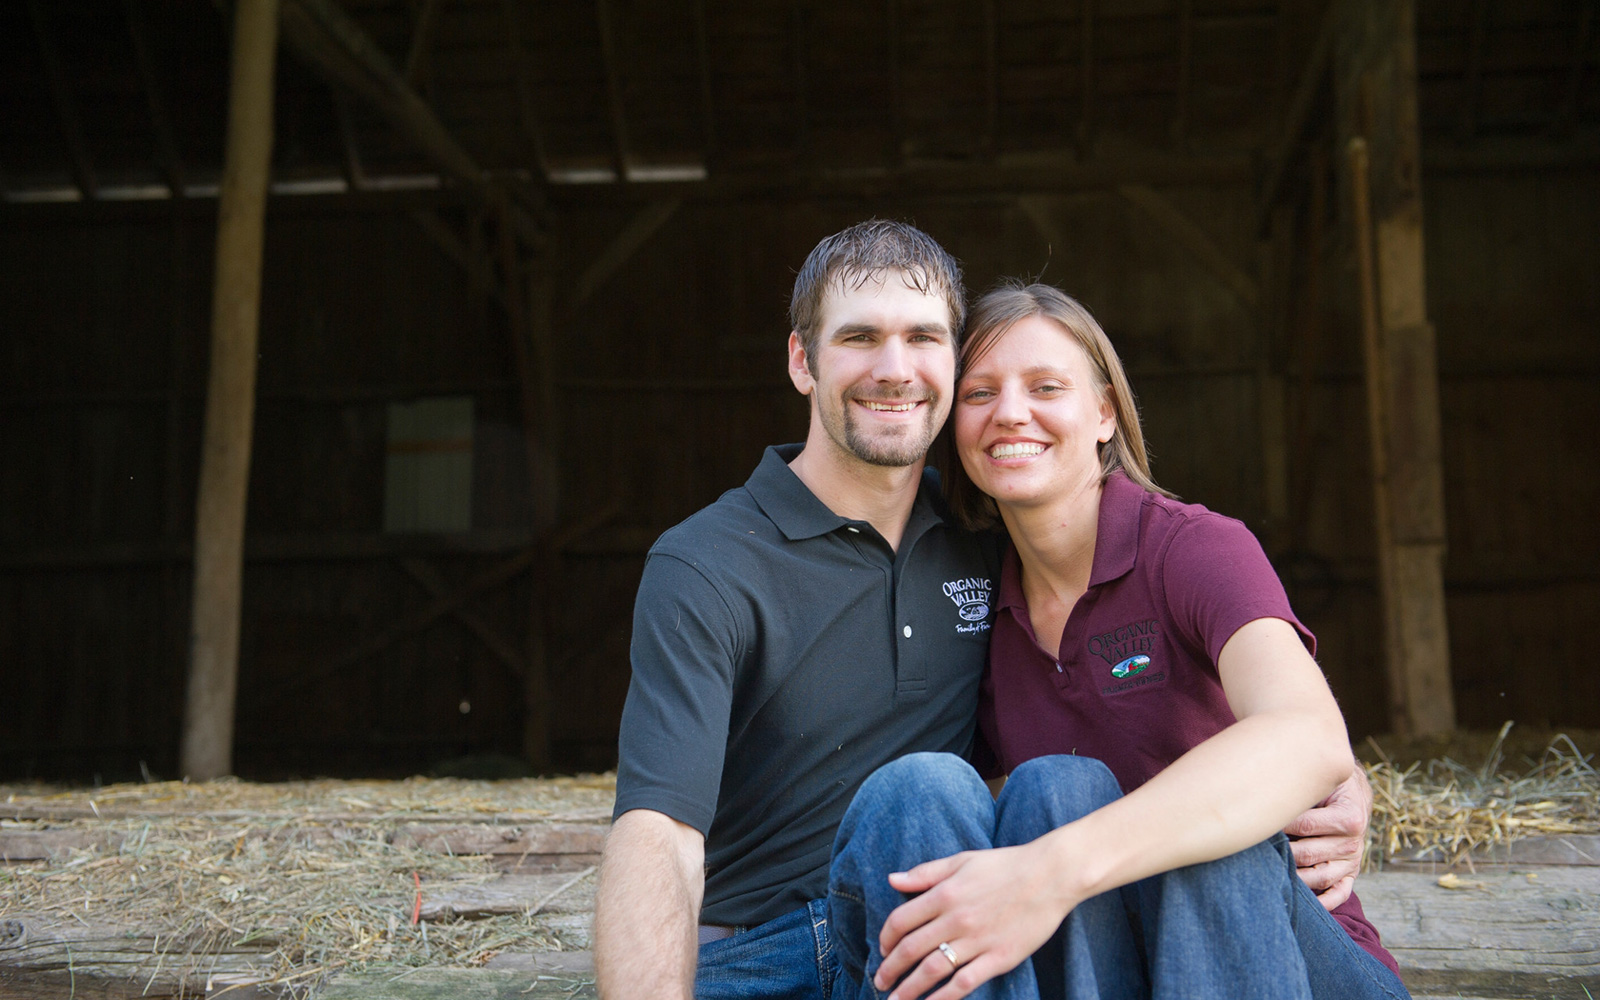 Emily and Tim Zweber are true partners on their farm, sharing the work and supporting one another.